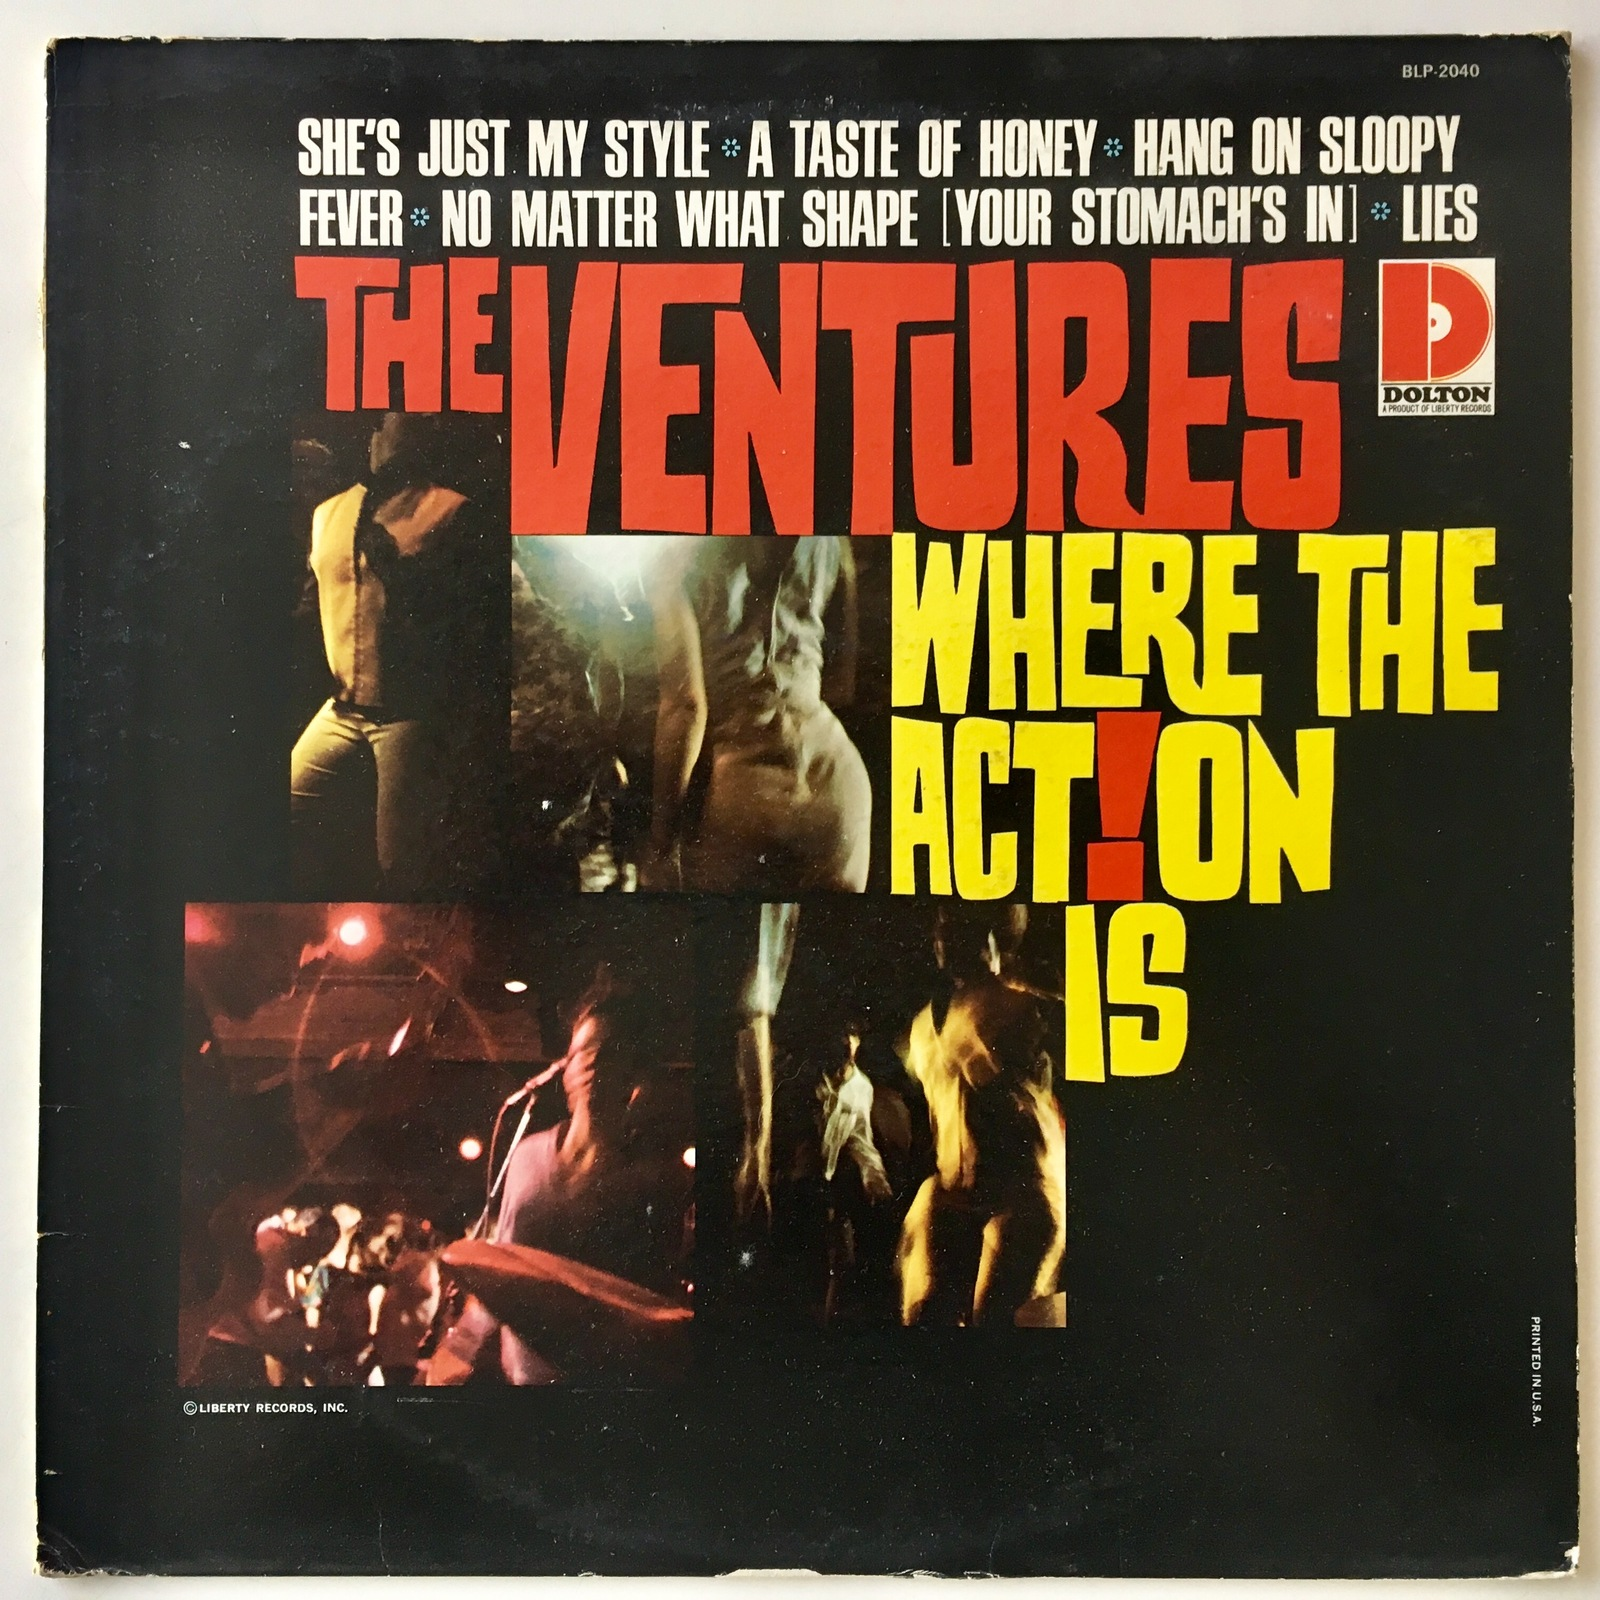 Primary image for The Ventures - Where The Action Is LP Vinyl Record Album, Dolton Records